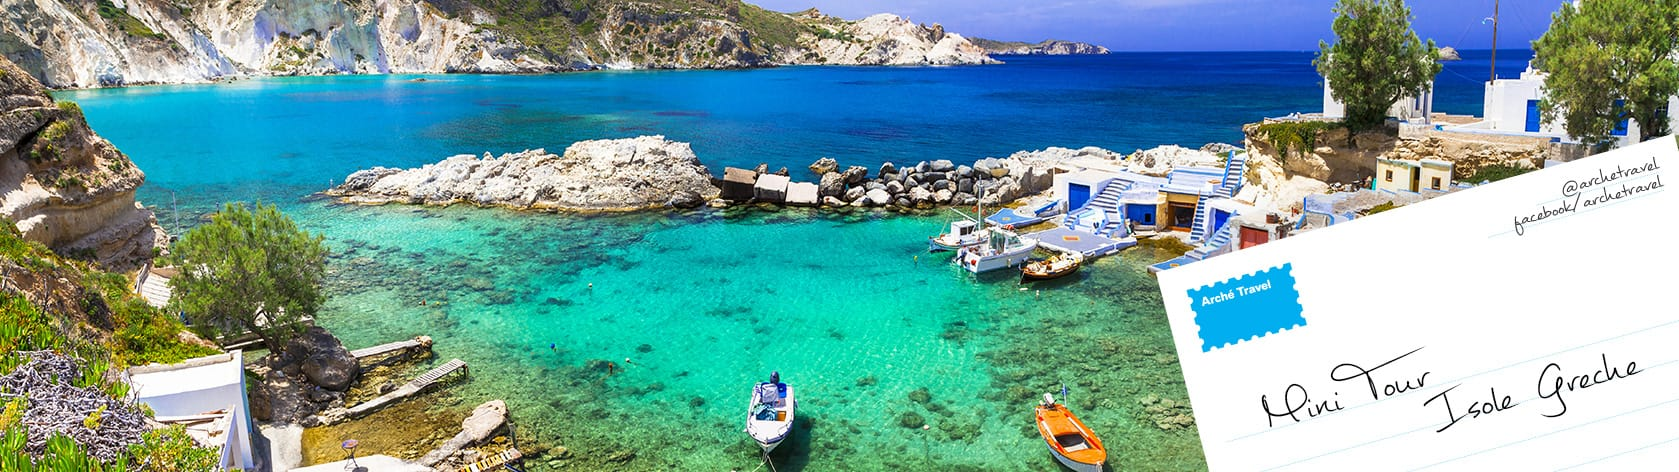 mini tour isole greche 7 giorni - Arché Travel - Tour Operator Grecia